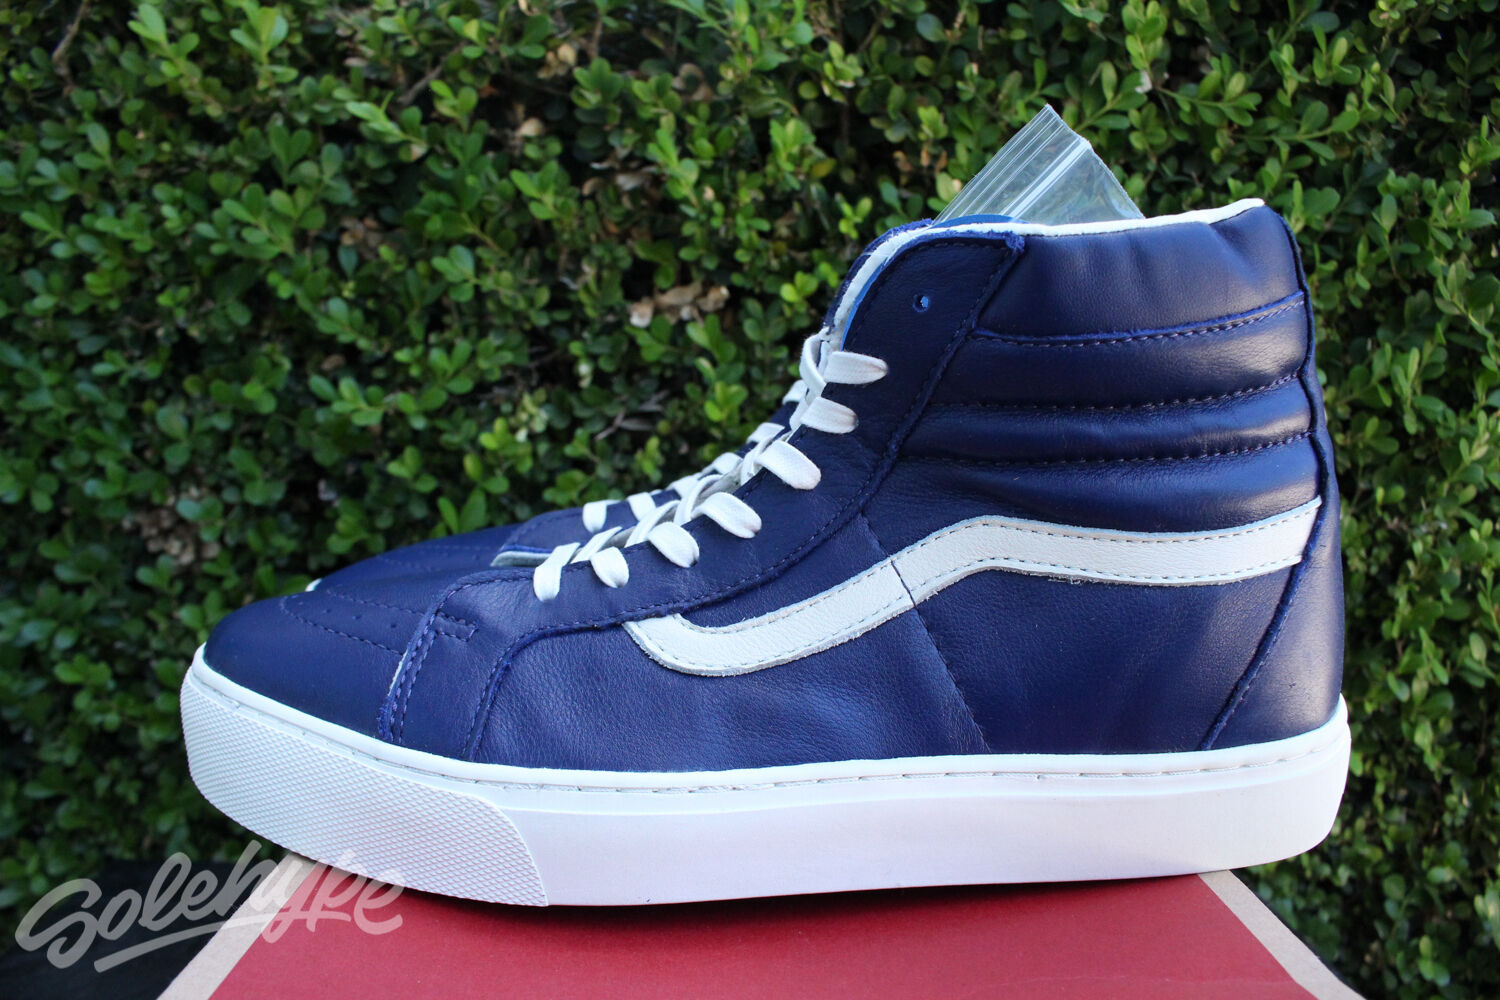 cd11529ebbbf8f Vans Ca Sk8 Hi Cup Leather Sz 10.5 Blue Whisper White Vn 0177Gj4 1 of  12Only 1 available See More